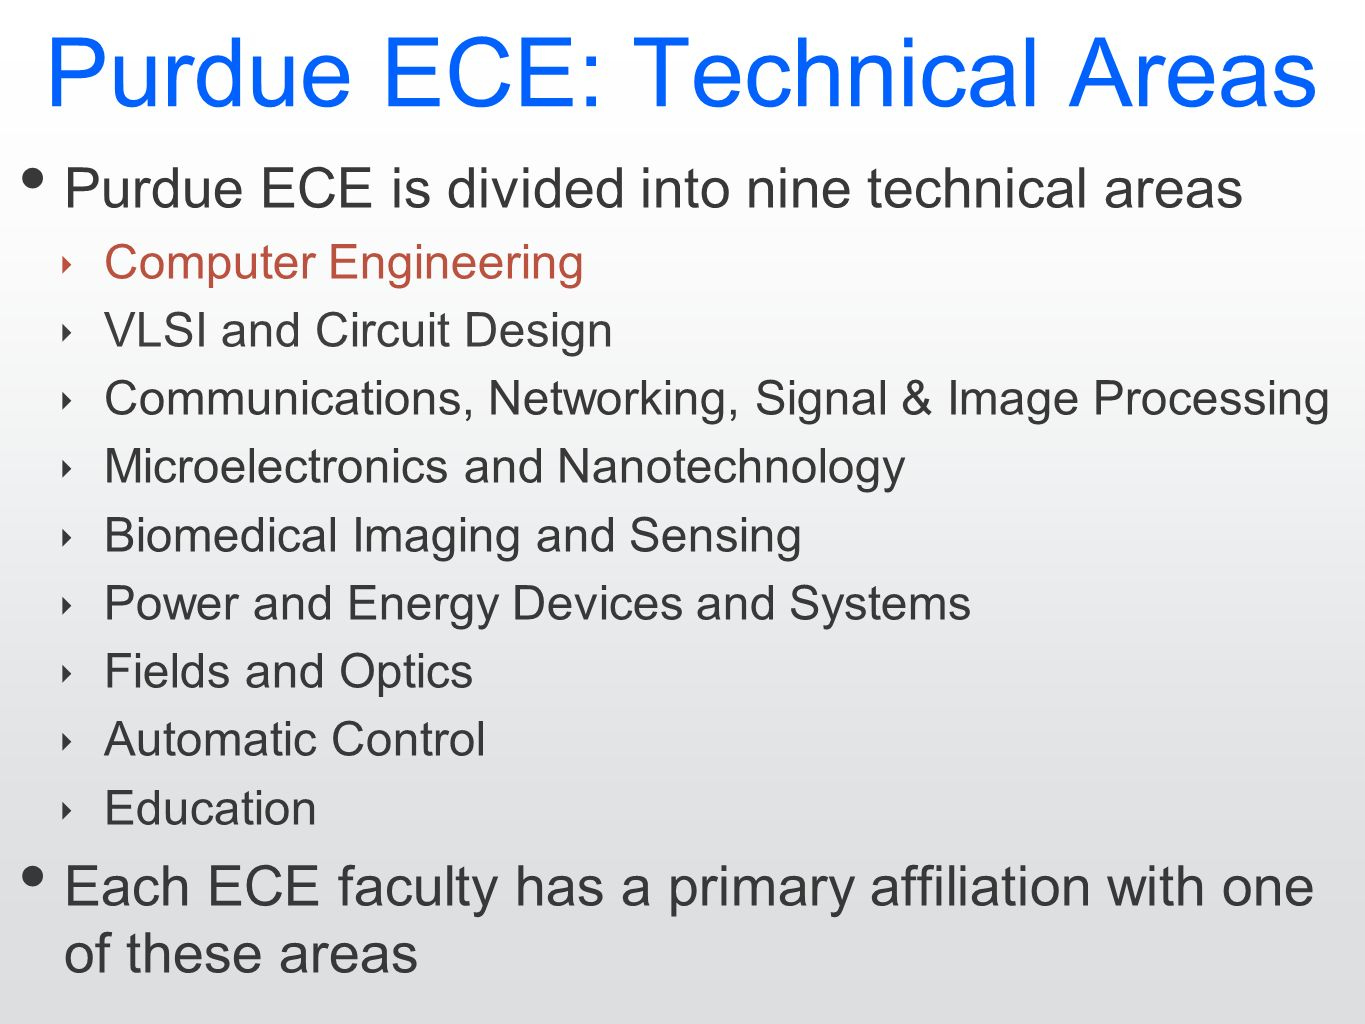 hight resolution of 2 purdue ece technical areas purdue ece is divided into nine technical areas computer engineering vlsi and circuit design communications networking